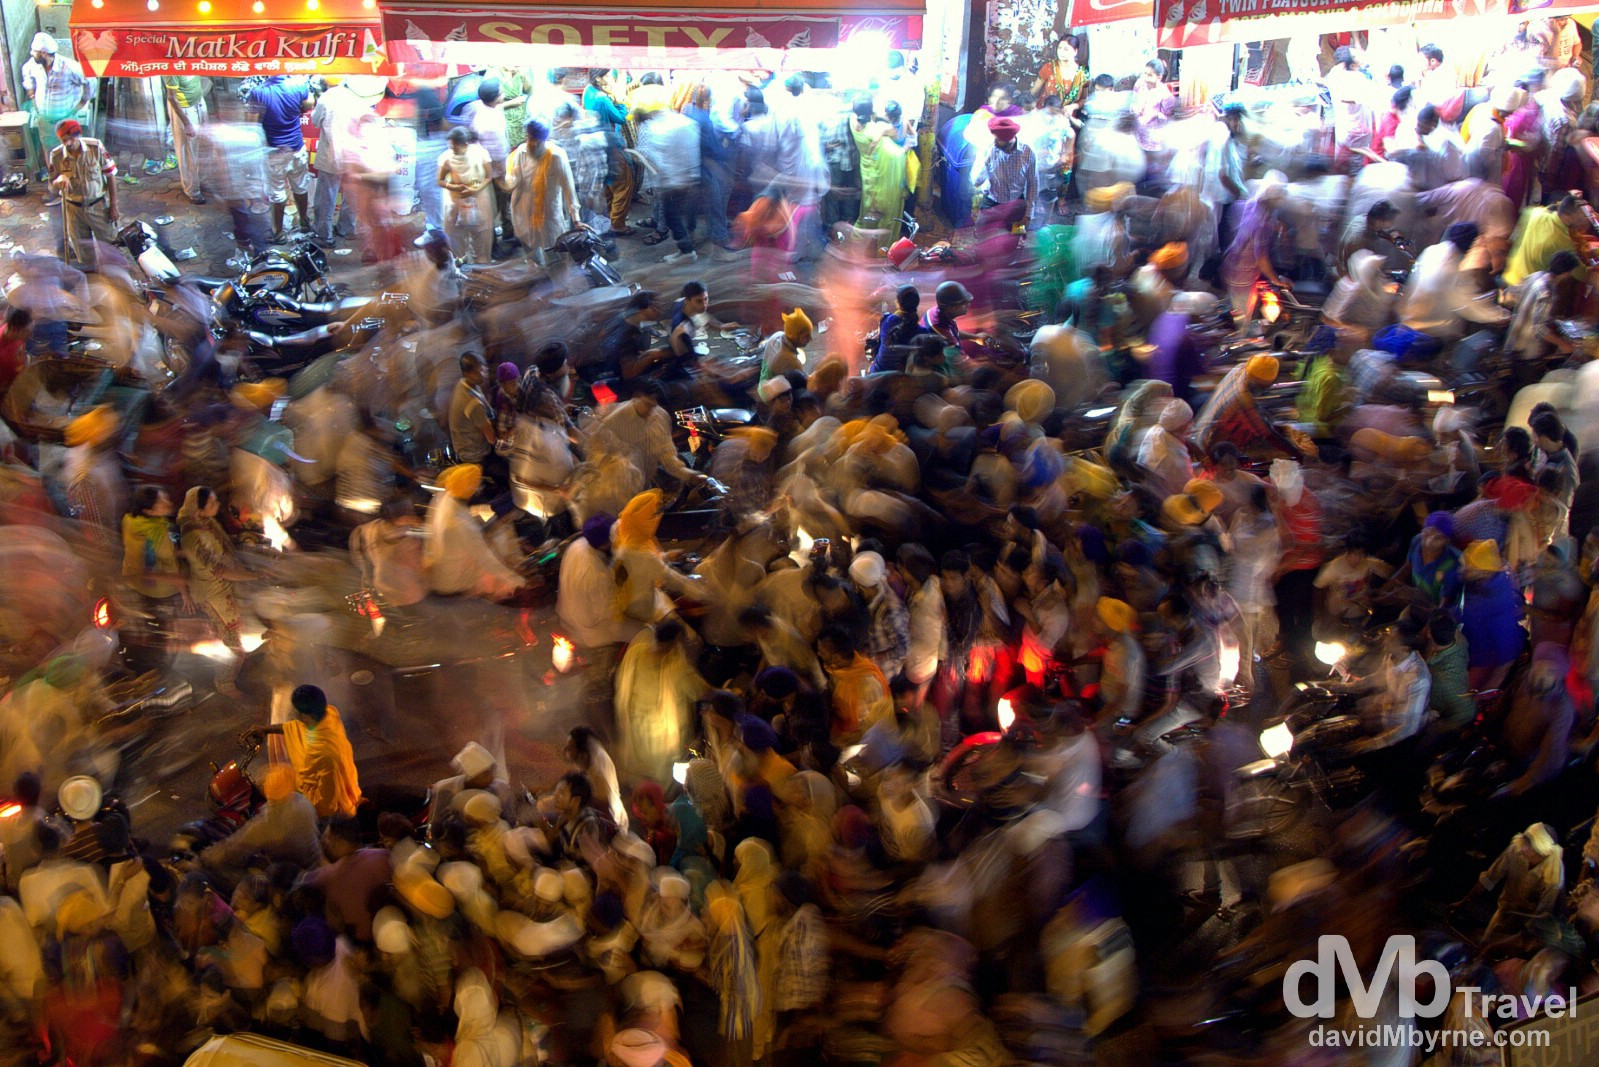 Crowds making their way to & from the Golden Temple along the crammed Old City streets of Amritsar, India. October 9th 2012.